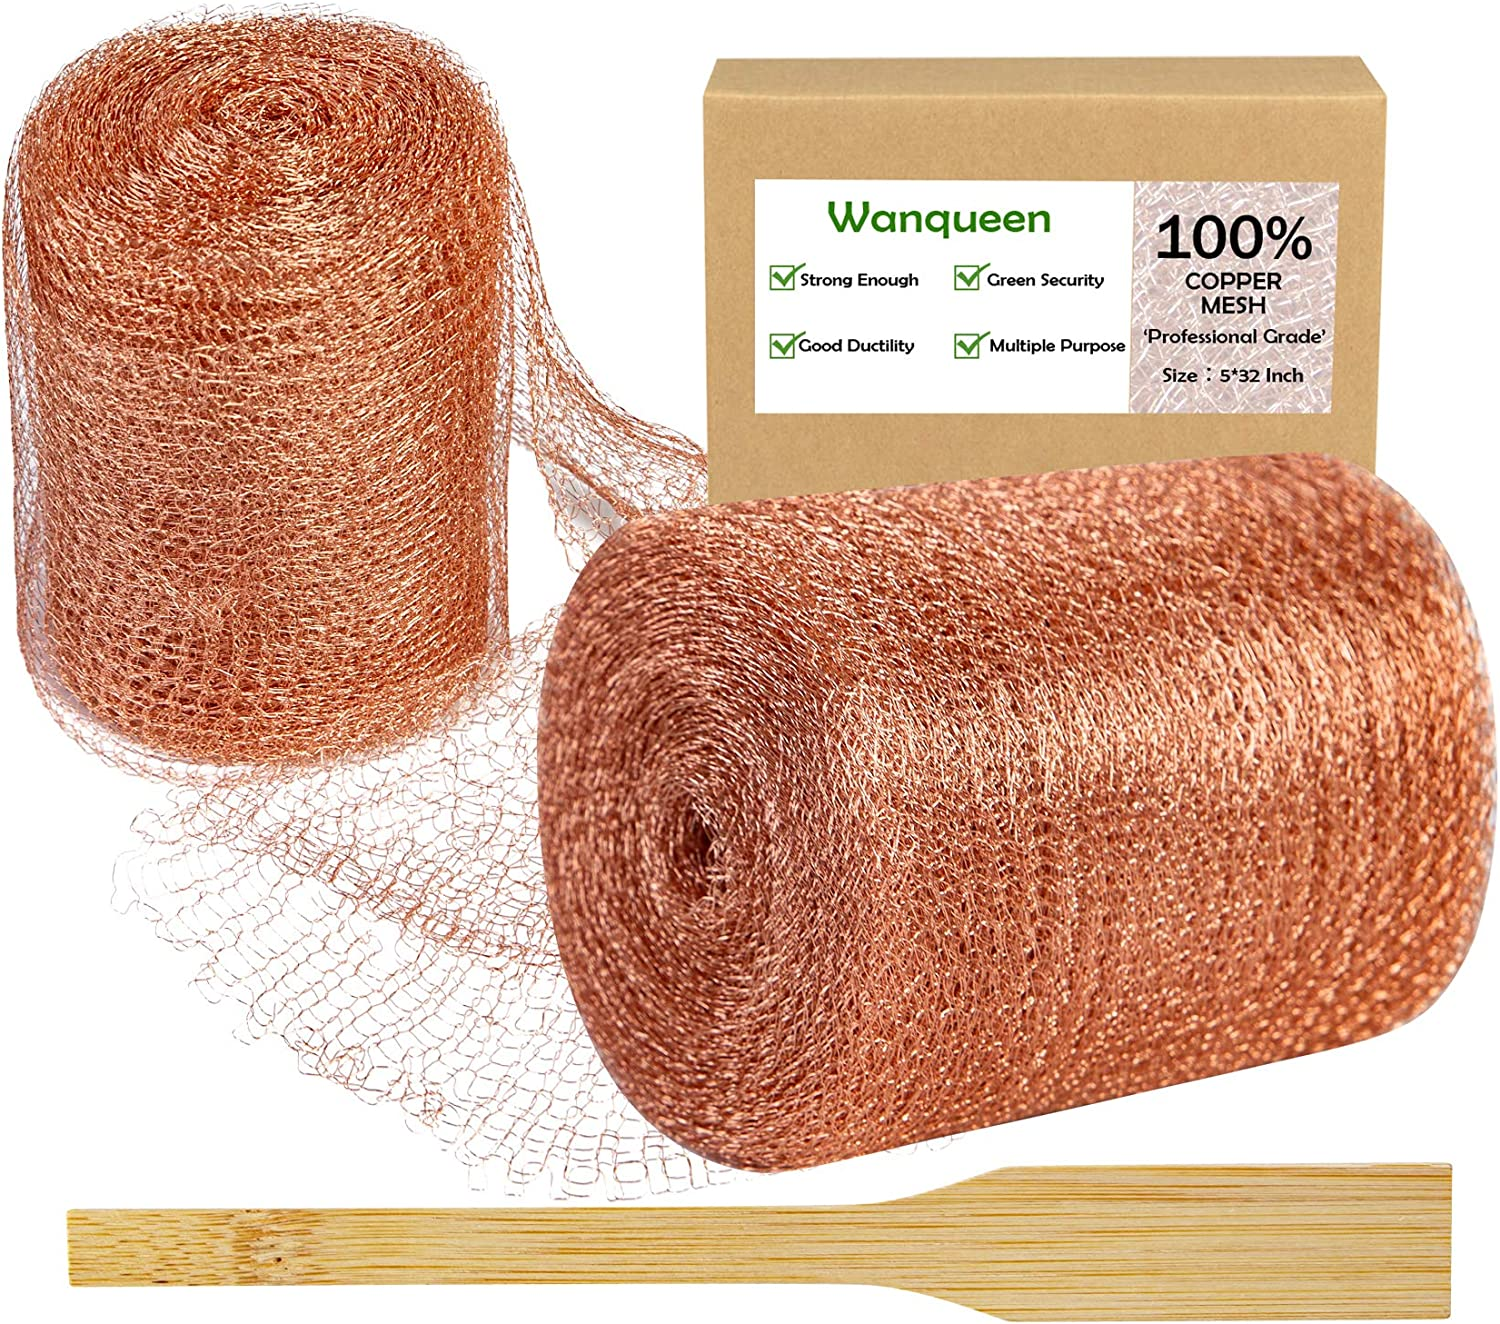 Wanqueen Copper Mesh Roll with Packing Tool, Sturdy 32 Feet Copper Fill Fabric, Copper Blocker Knitted for Distilling, Snail Birds Mouse Rat Rodent Control